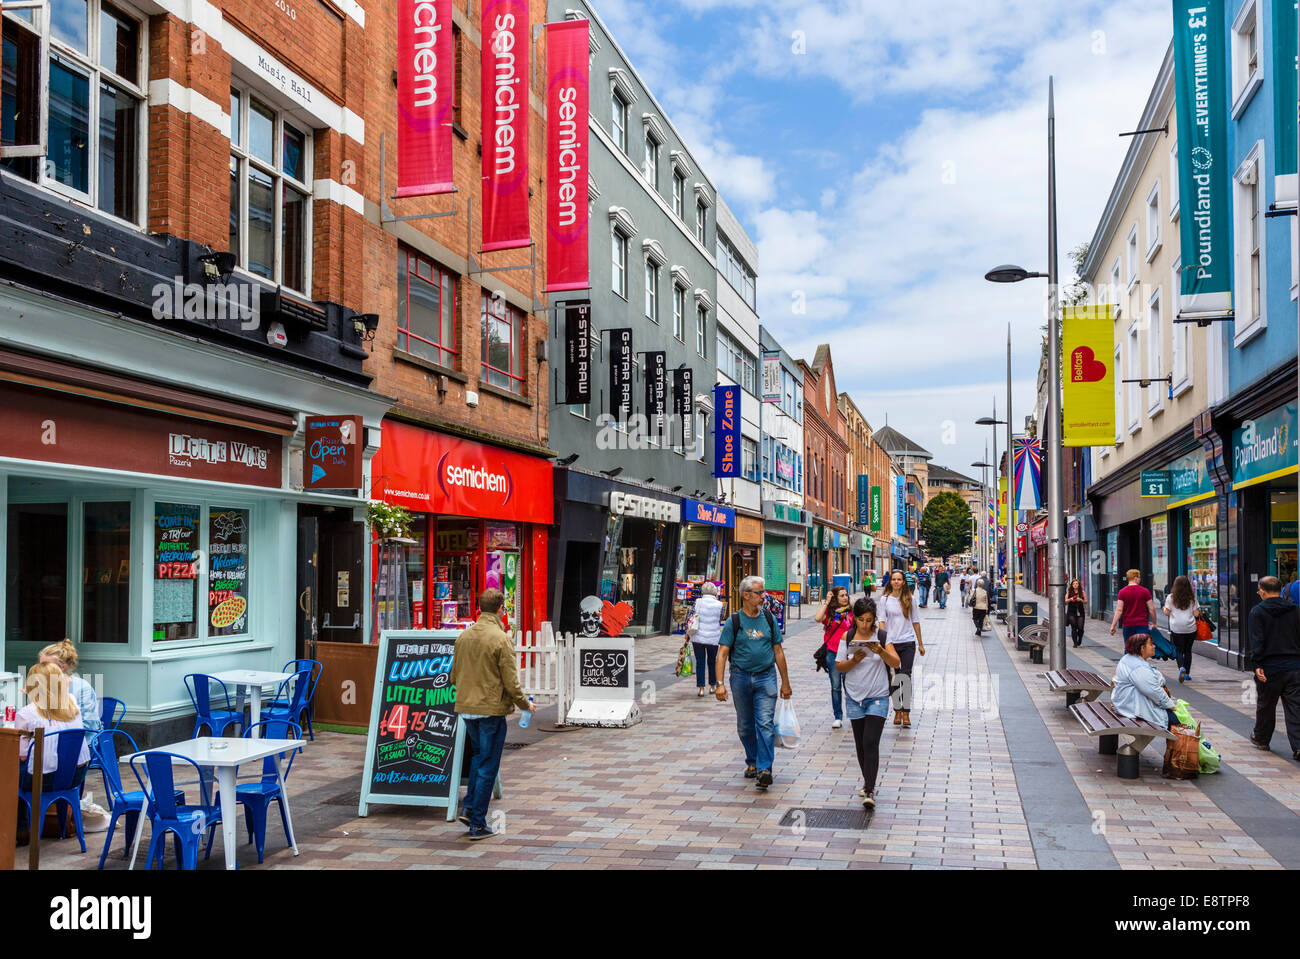 Shops and cafes on Ann Street in the city centre, Belfast, Northern Ireland, UK - Stock Image